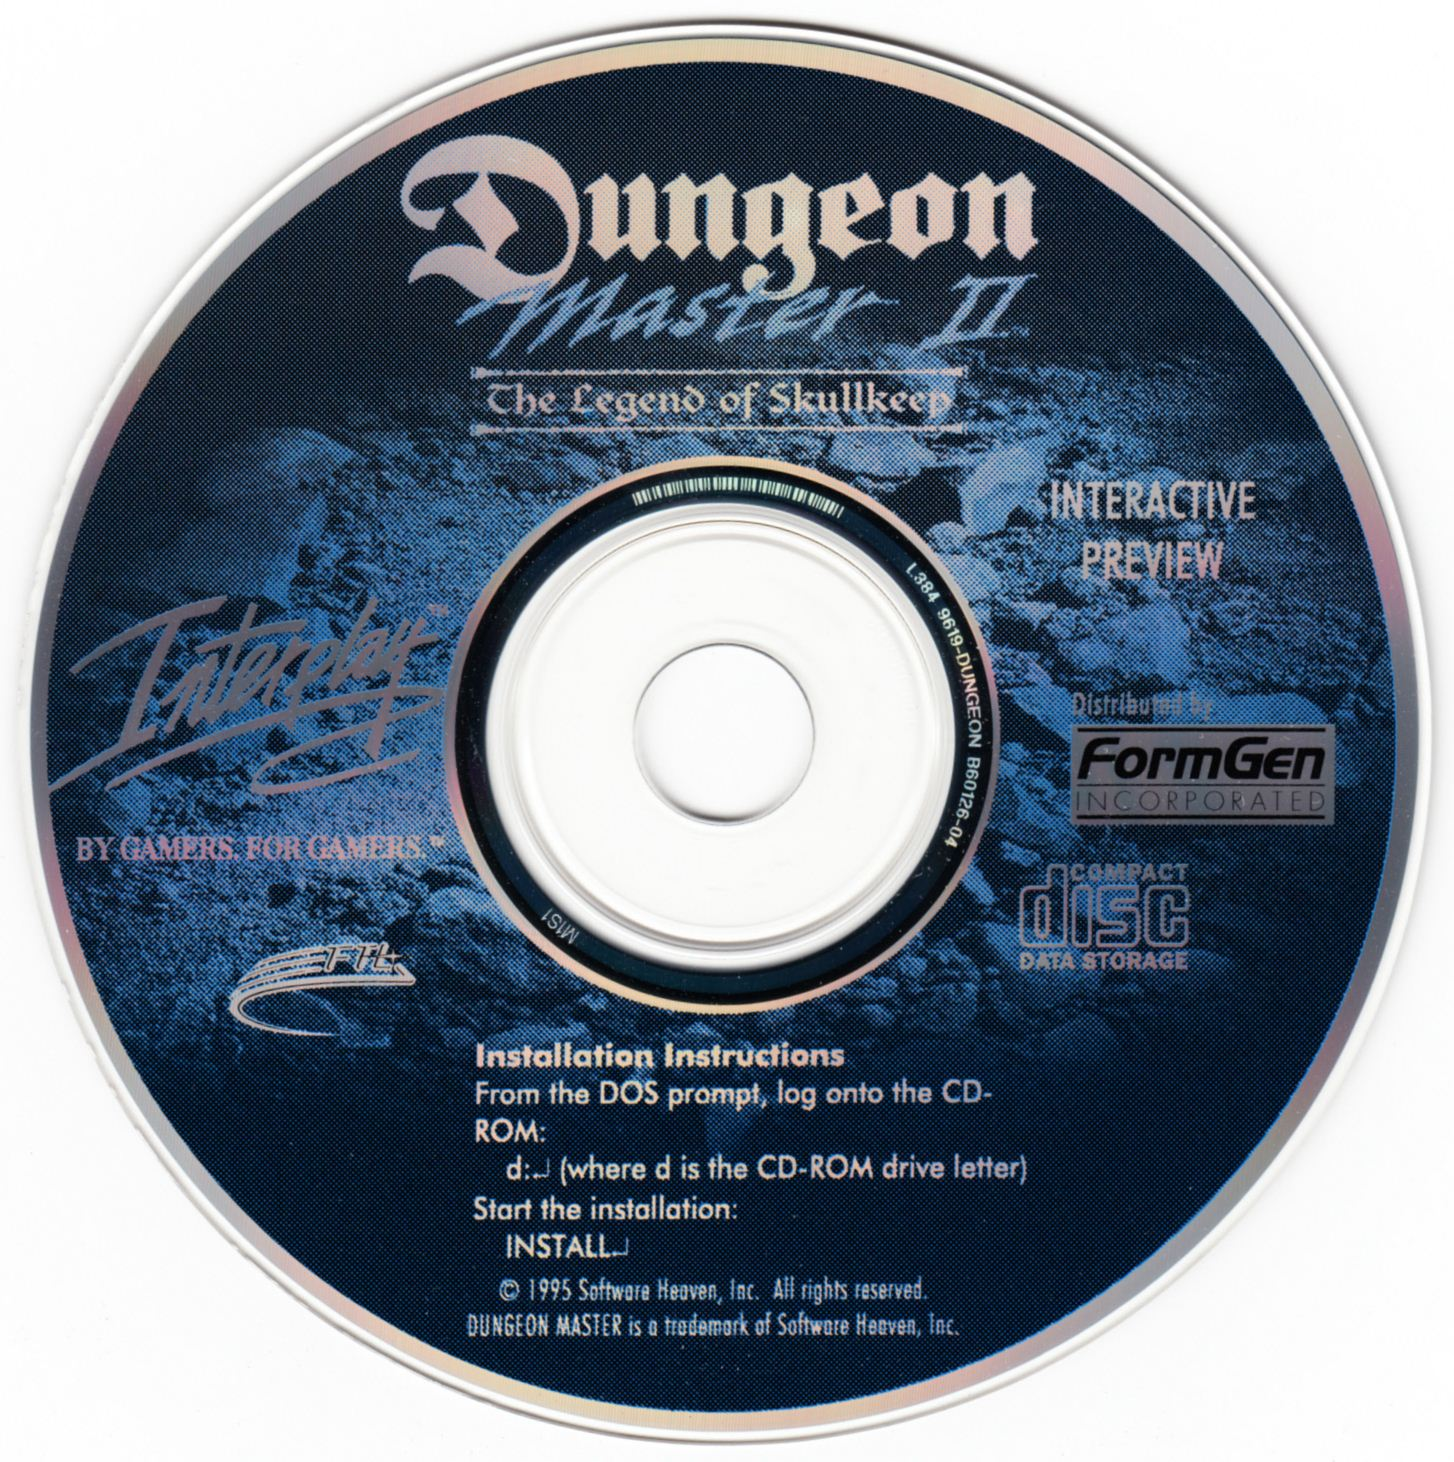 Demo - Dungeon Master II - US - PC - Compact Disc - Front - Scan